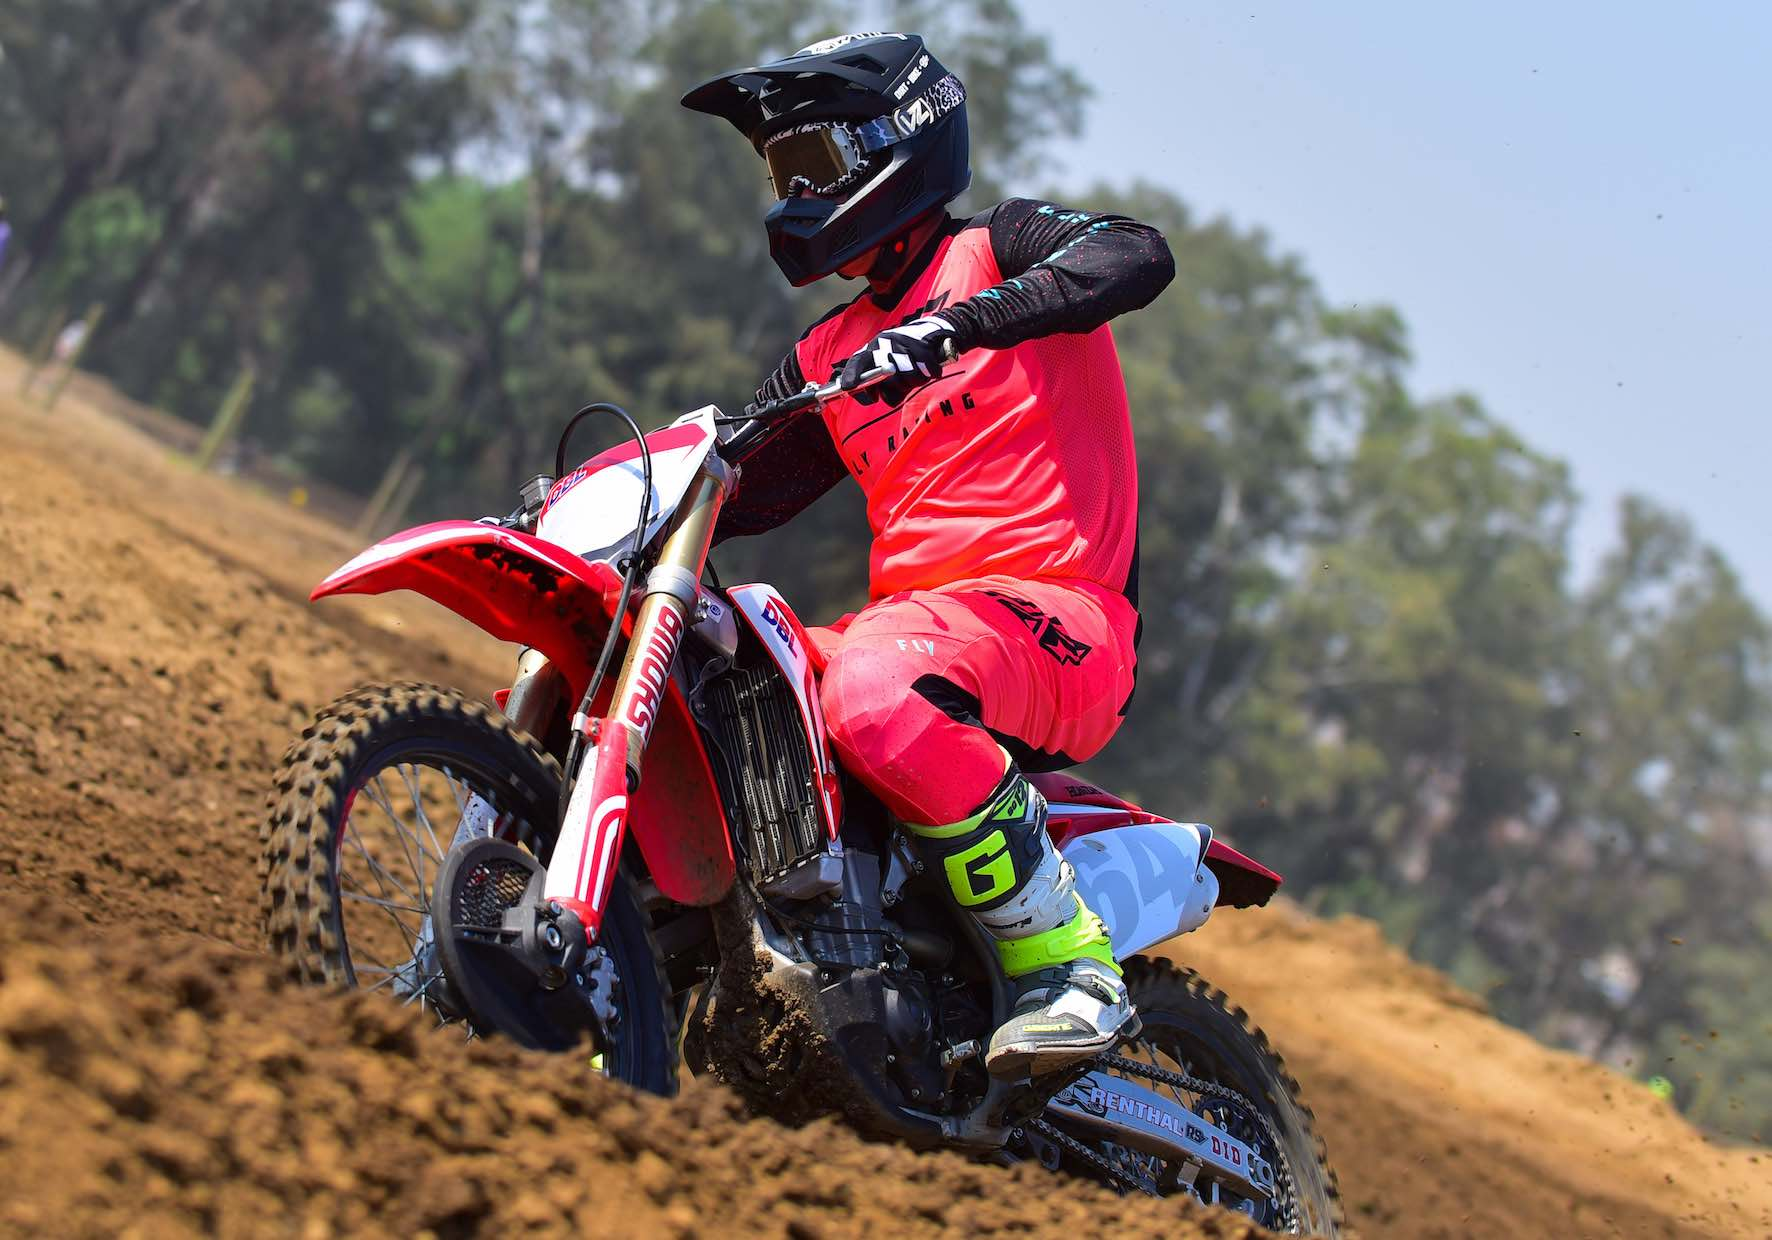 Taking the new 2020 Fly Lite Motocross Racewear through its paces